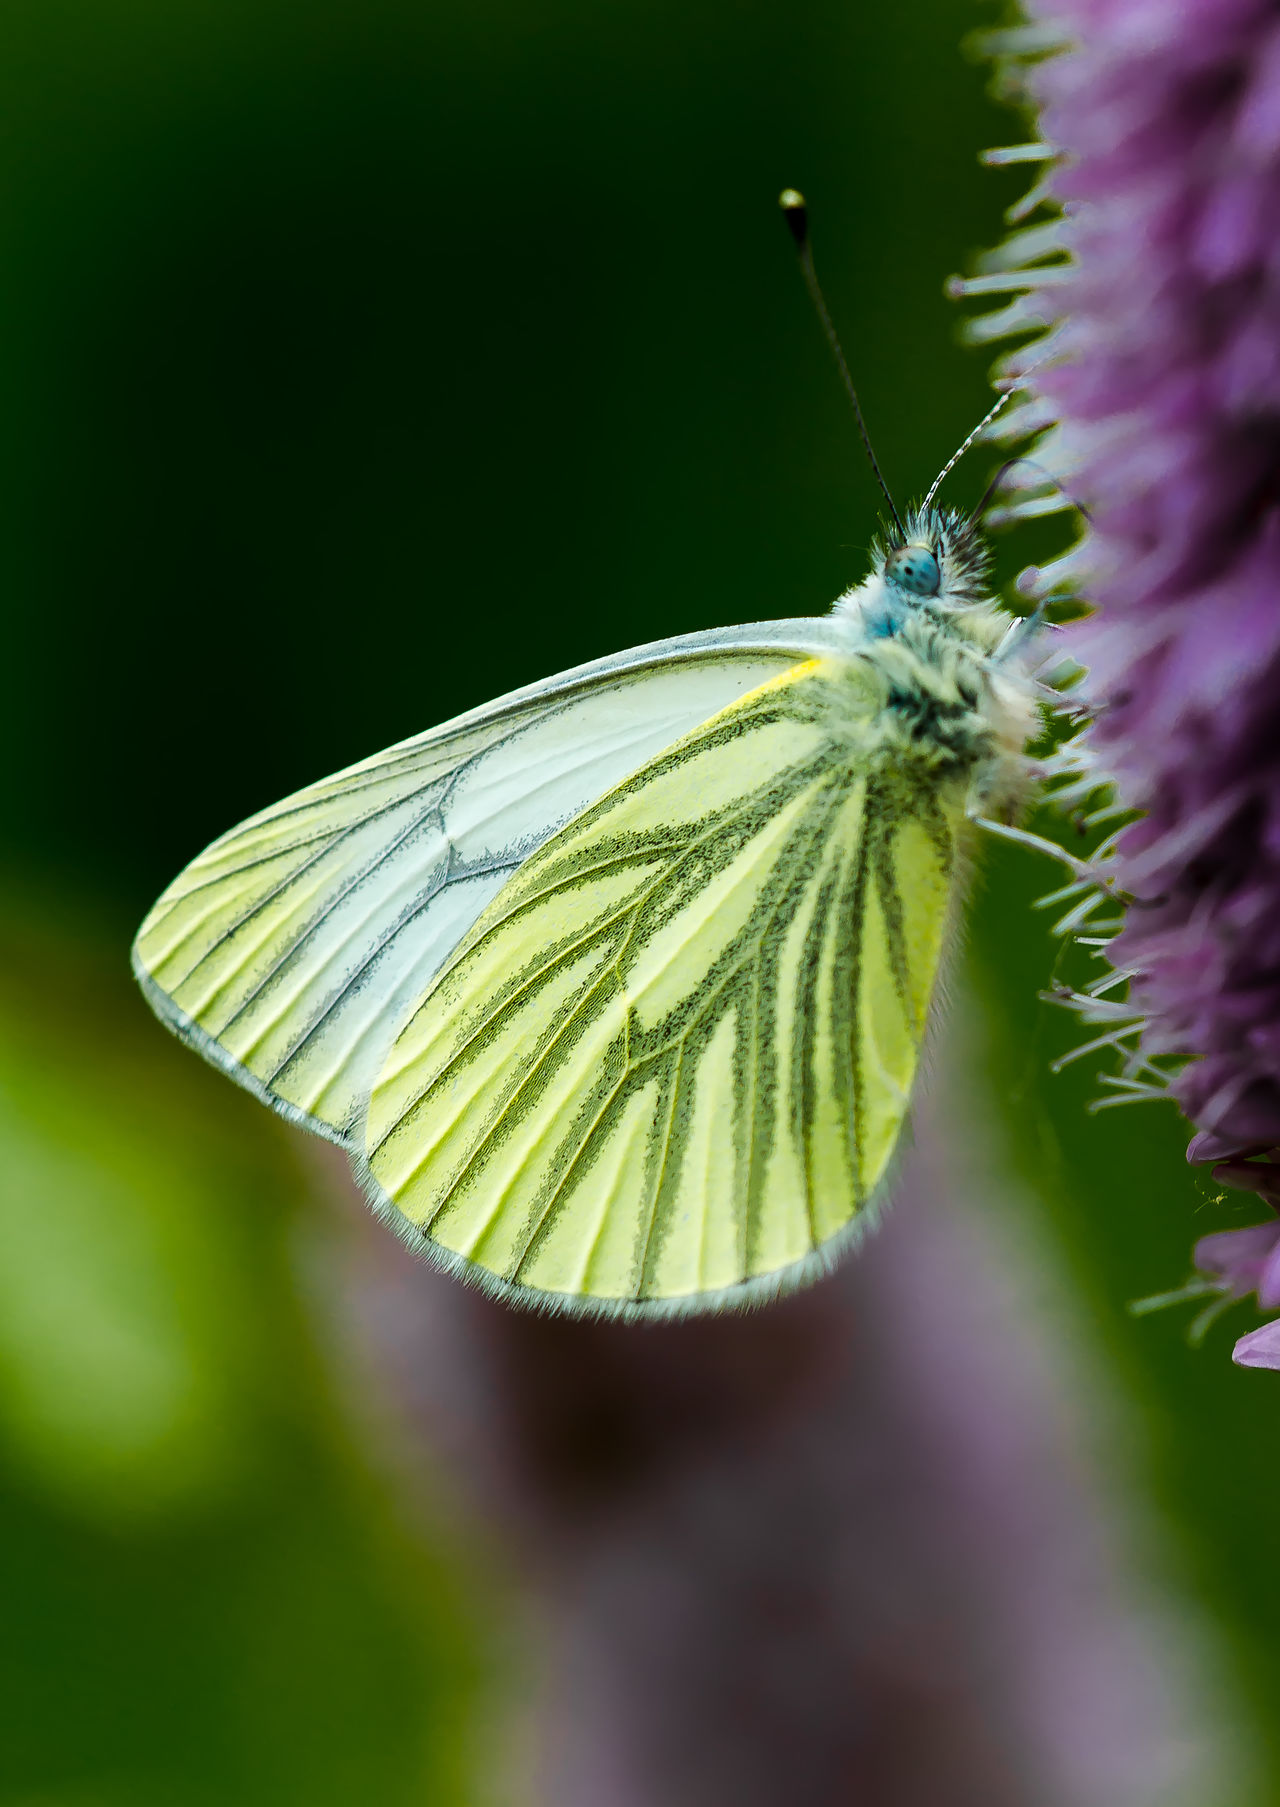 Green Veined White on Flower Animal Themes Animals In The Wild Beauty In Nature Close-up Day Fragility Green Veined White Butterfly Insect Nature No People One Animal Outdoors Wings Closed